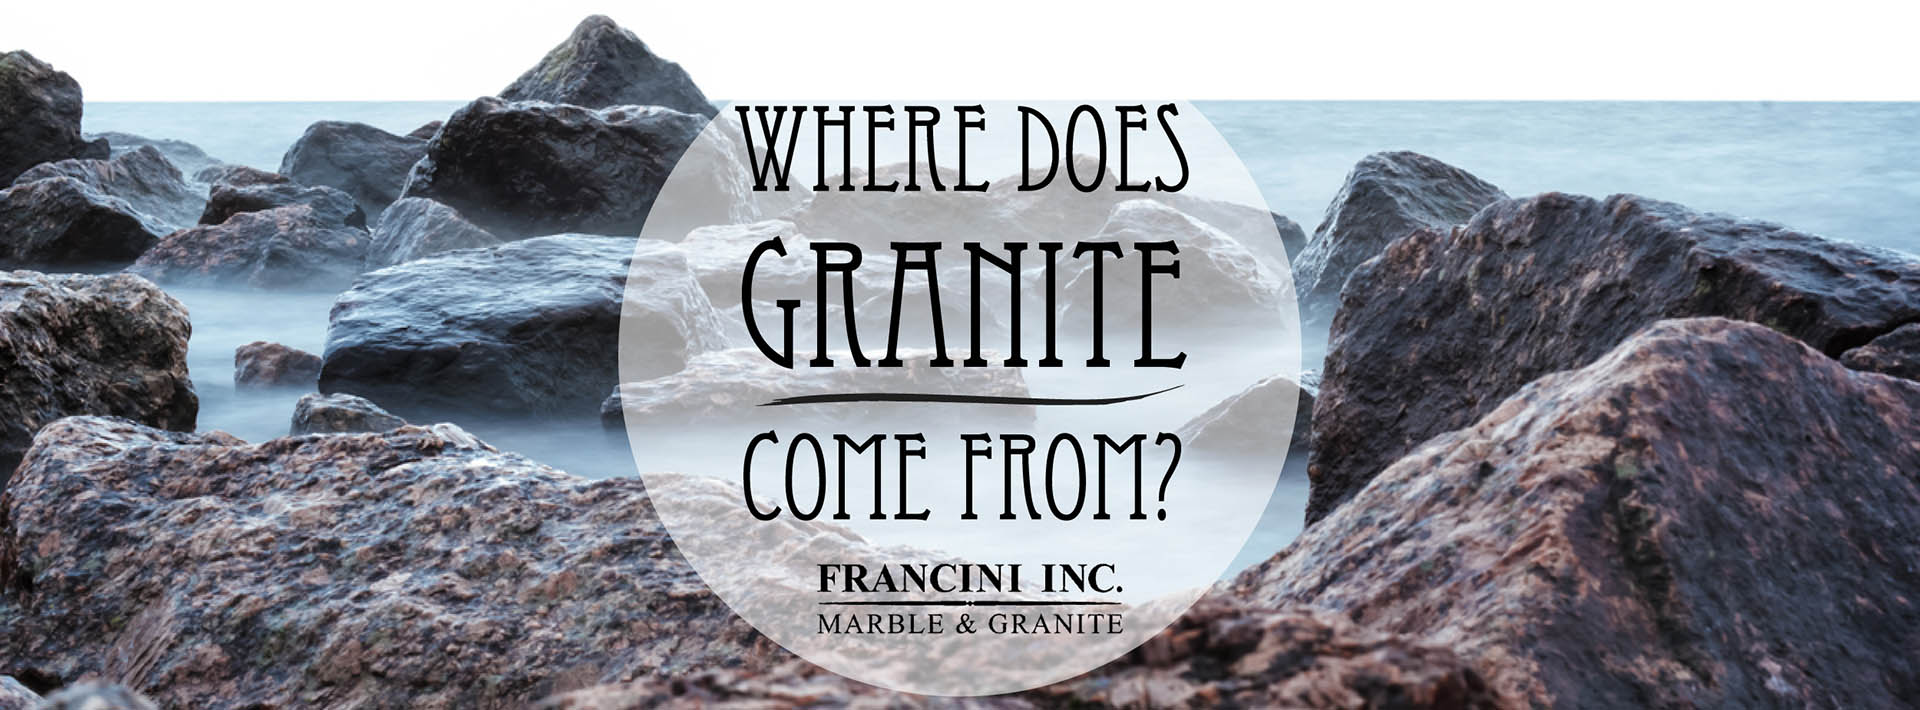 Where Does Granite Come From?